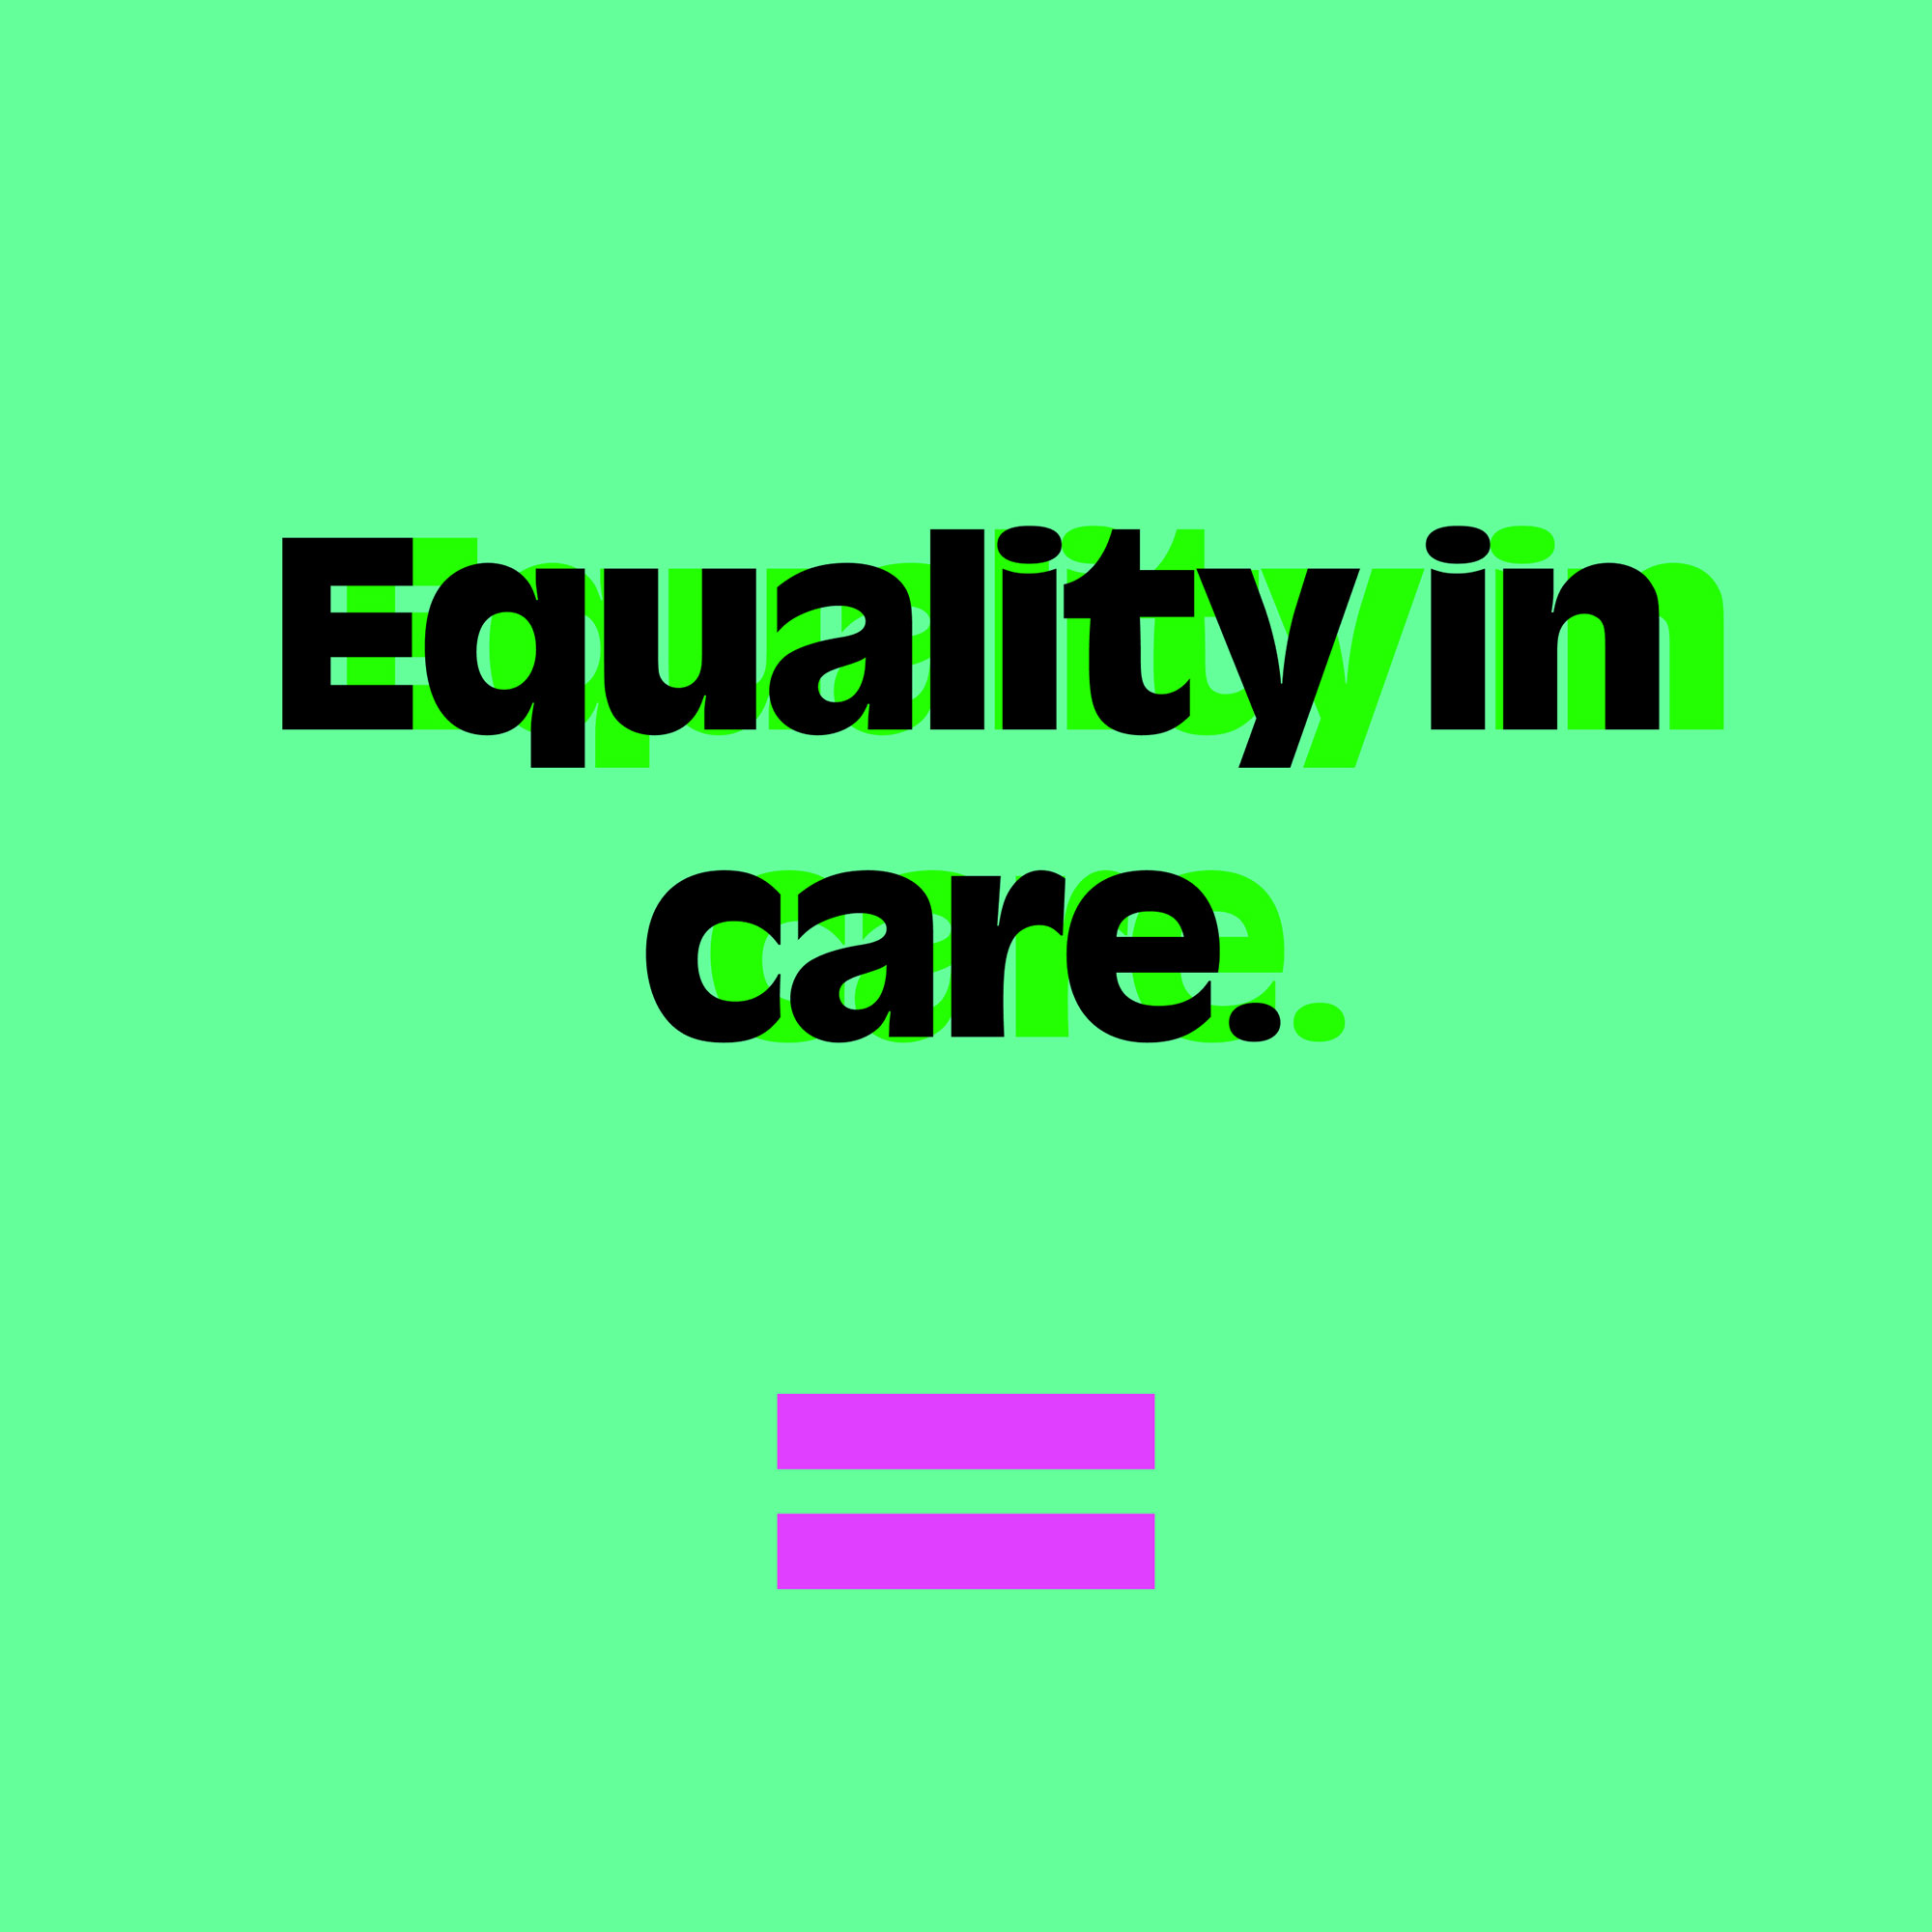 We All Deserve Culturally Competent Care